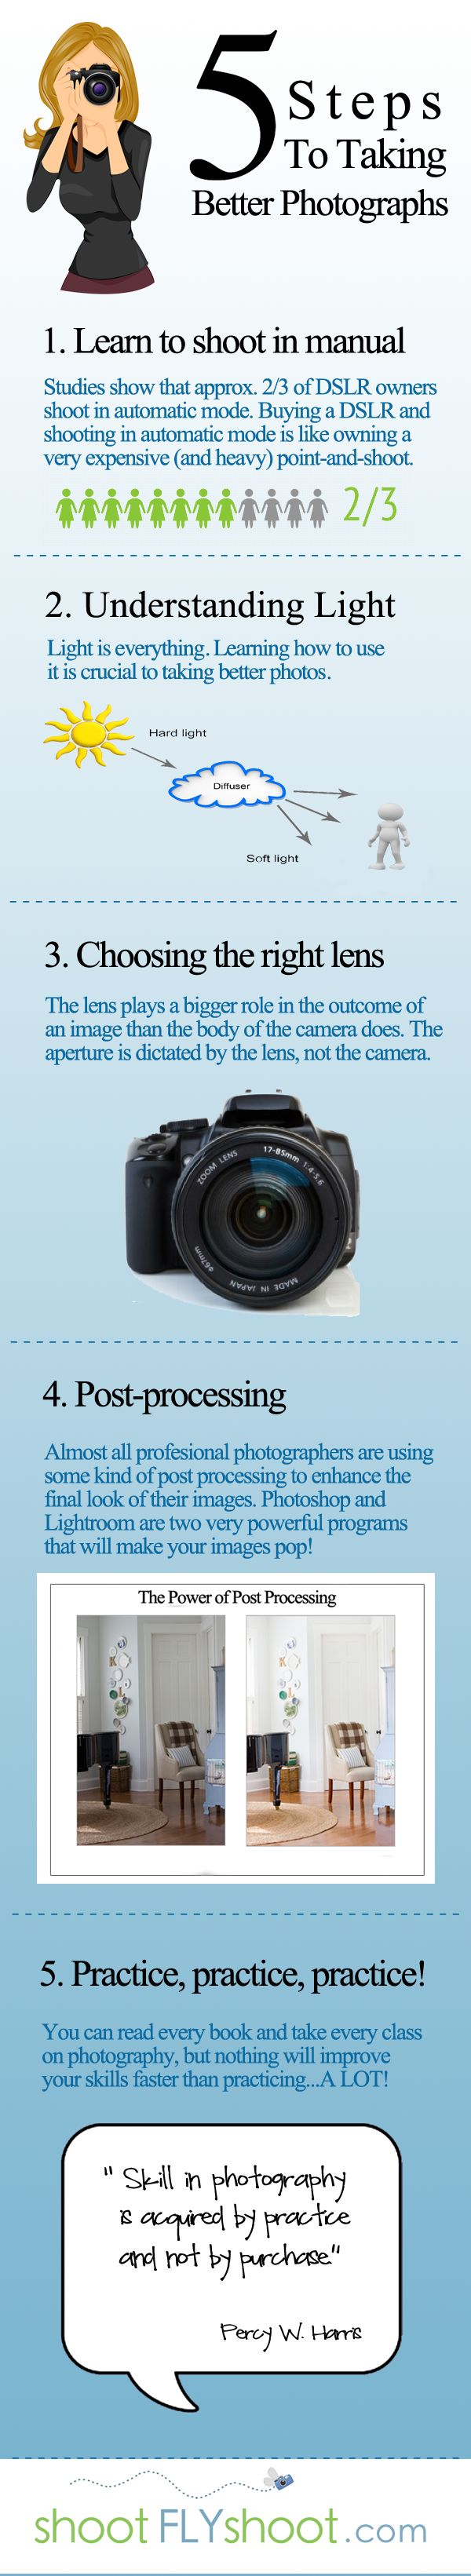 5 Steps to Taking Better Photographs